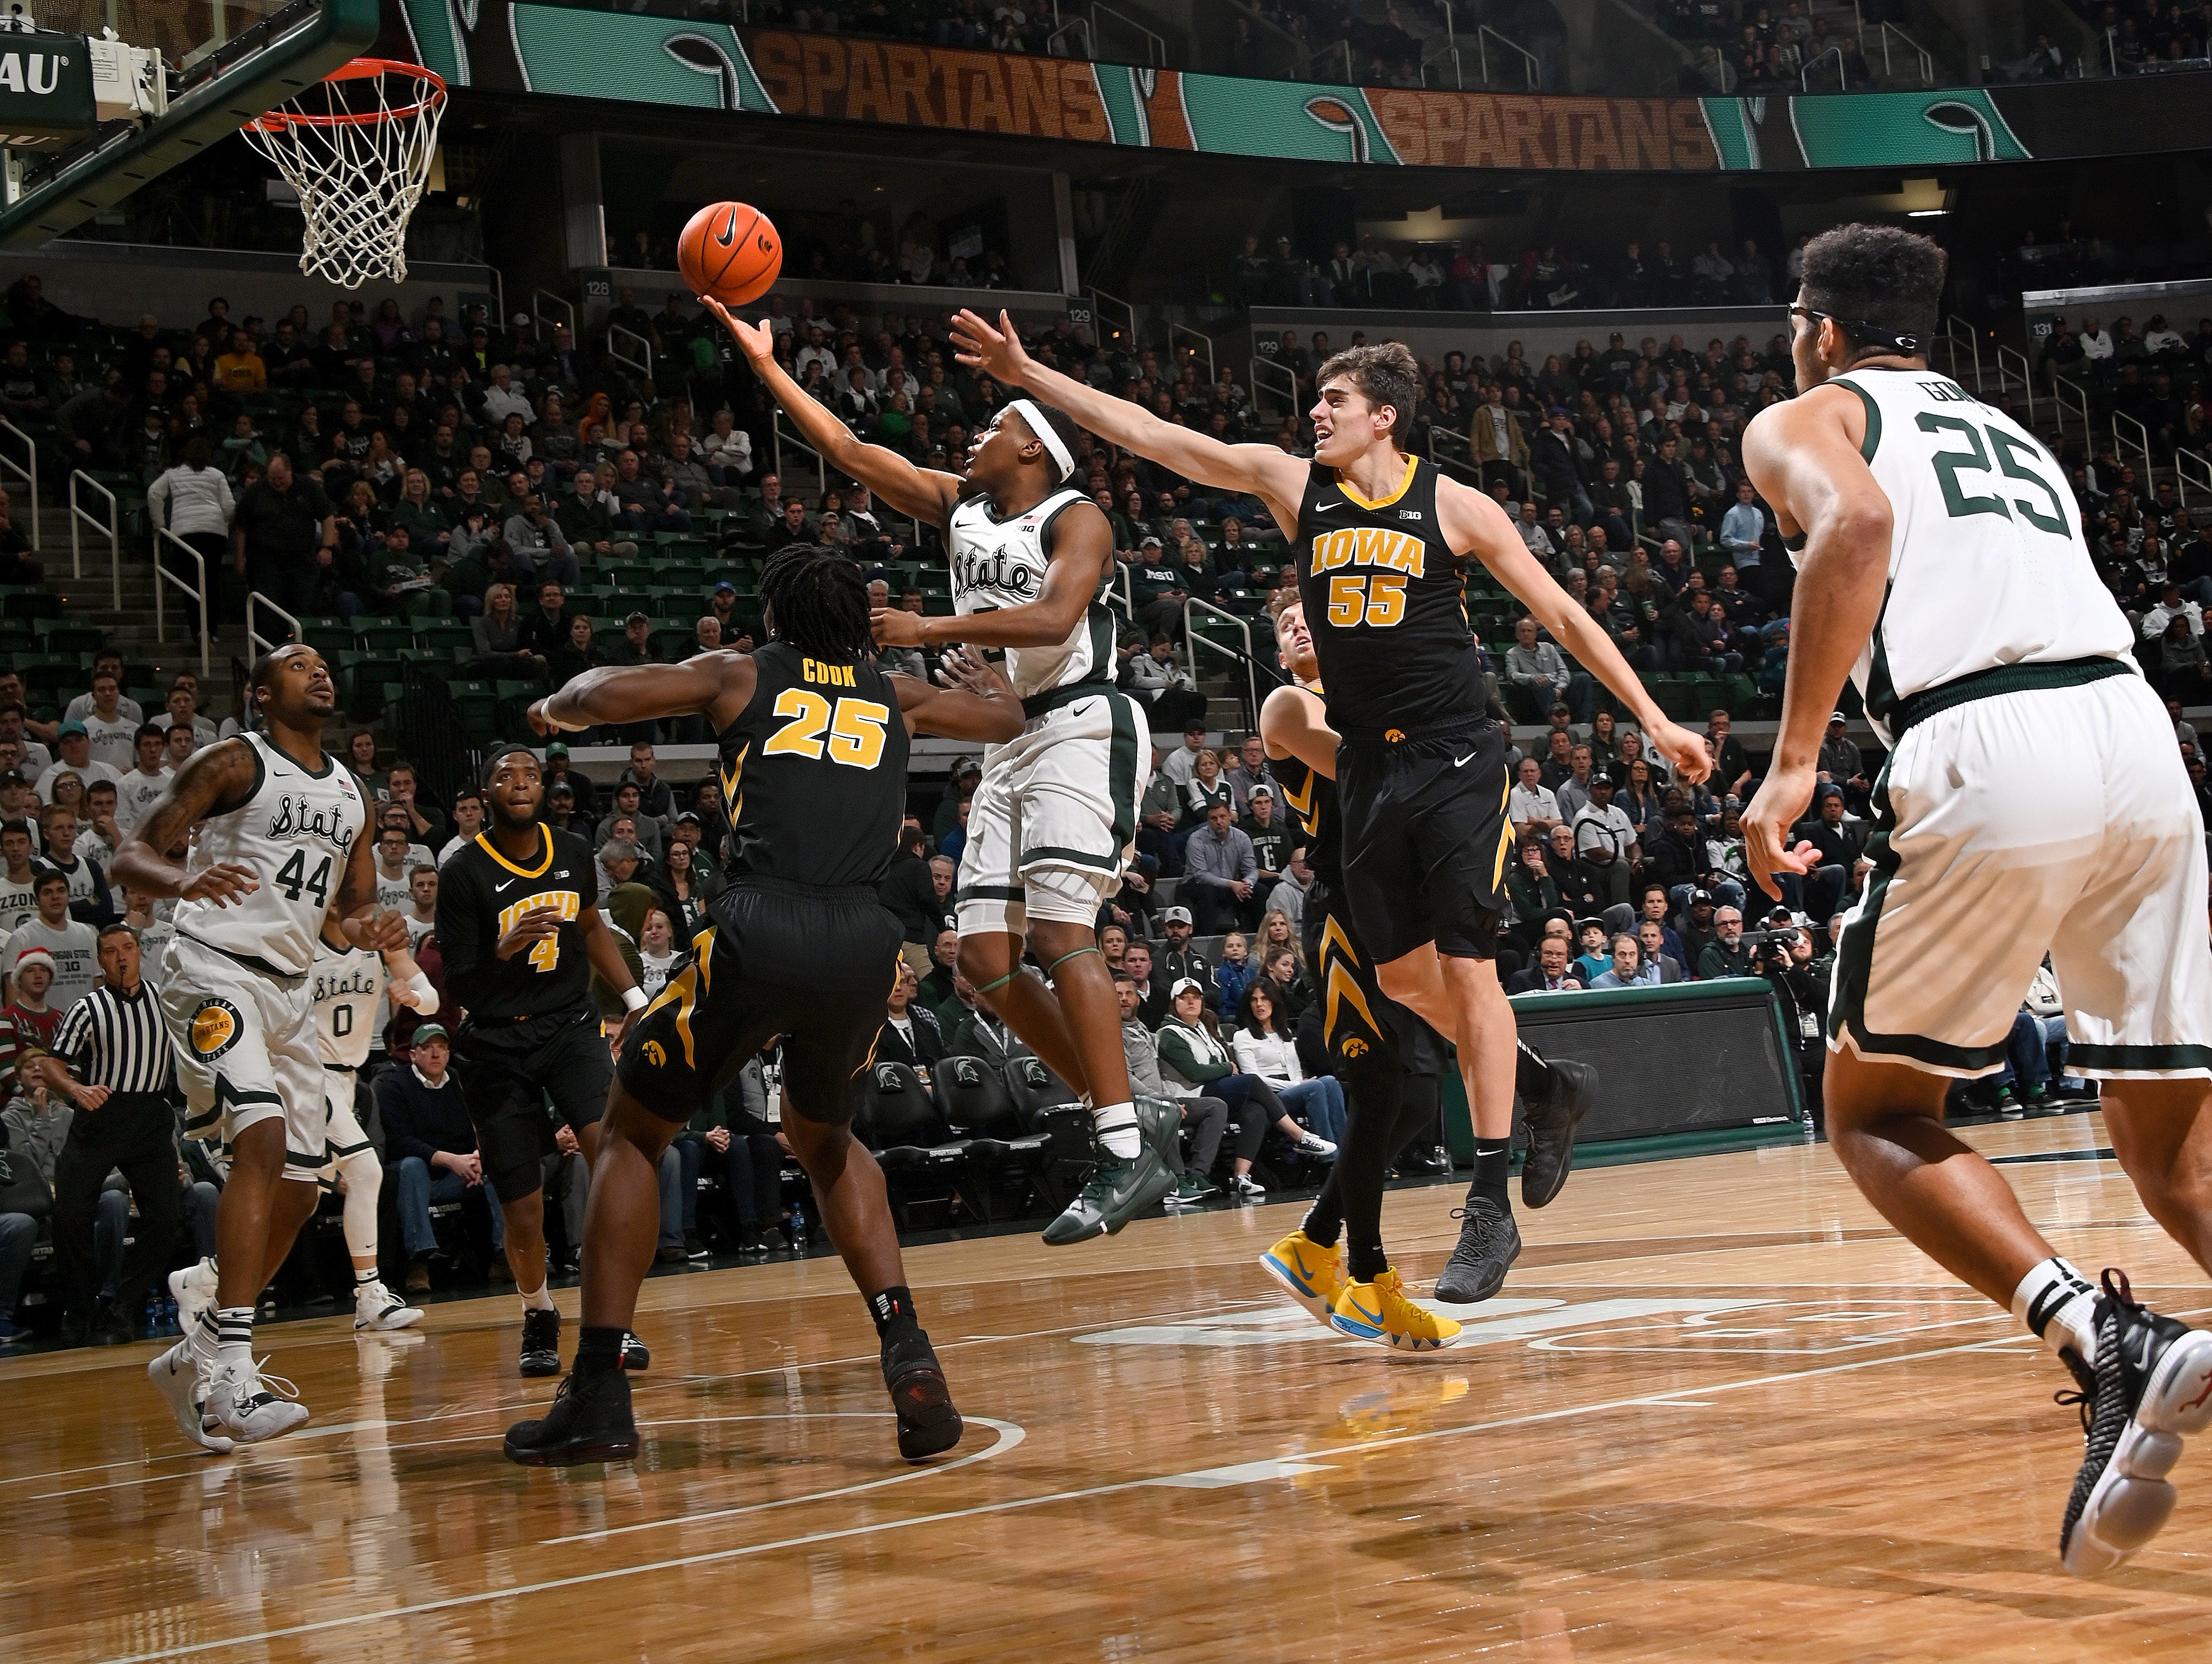 Cassius Winston slashes through the Hawkeye defense for a basket in the first half.